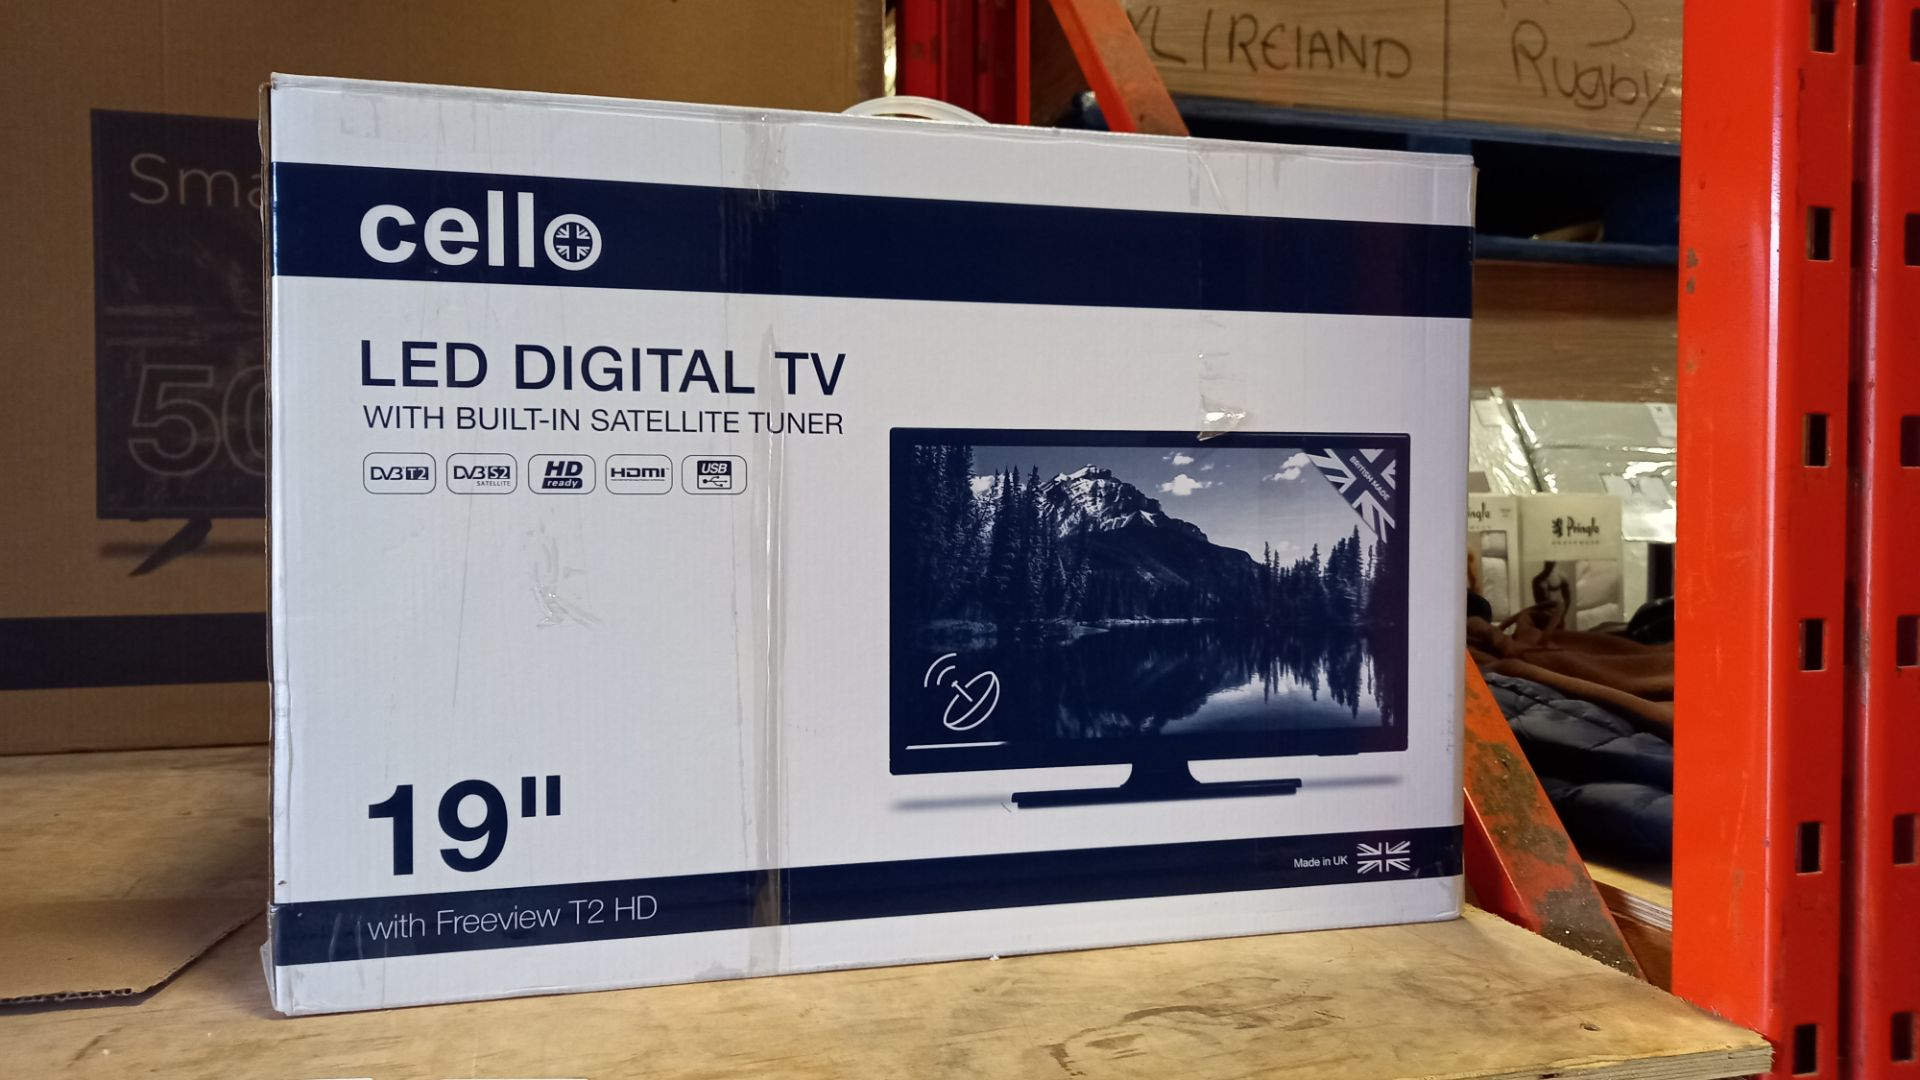 1 X BRAND NEW CELLO 19 LED DIGITAL TV WITH BUILT IN SATELLITE TUNER (WITH FREEVIEW T2 HD)